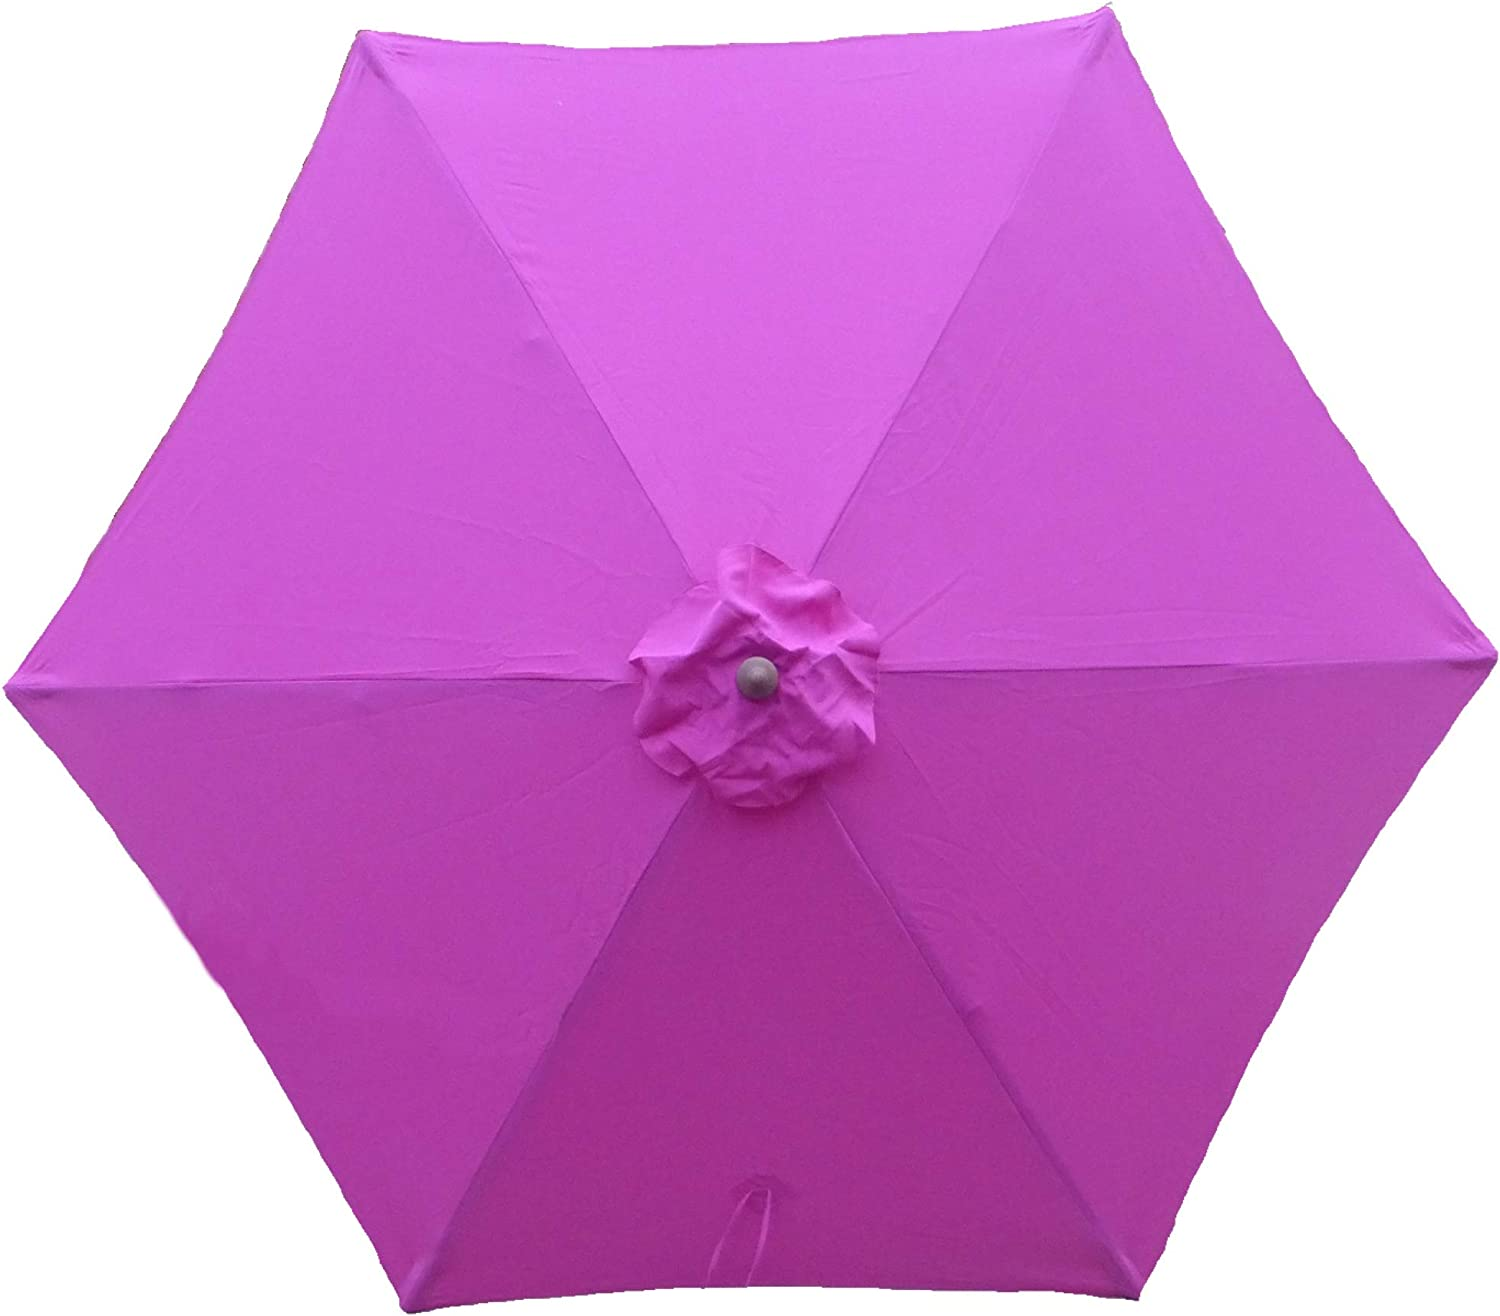 Formosa Genuine Covers 9ft Umbrella Replacement Sales for sale Canopy Ribs in Fuchsia 6